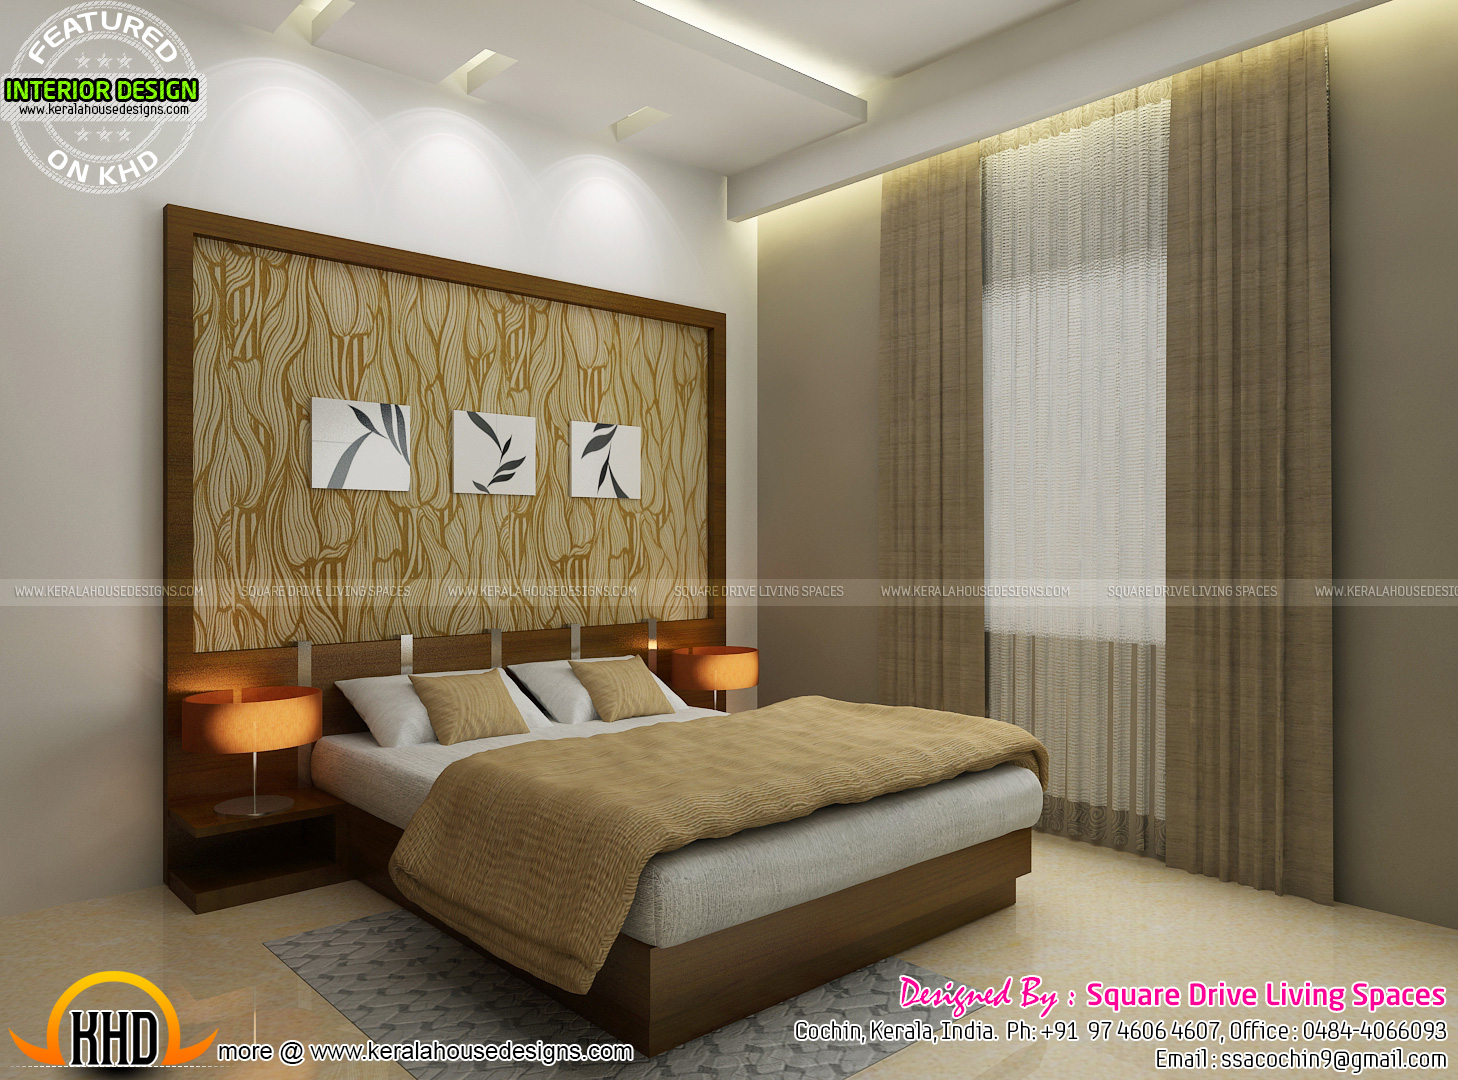 Interior designs of master bedroom living kitchen and for Interior house design pictures